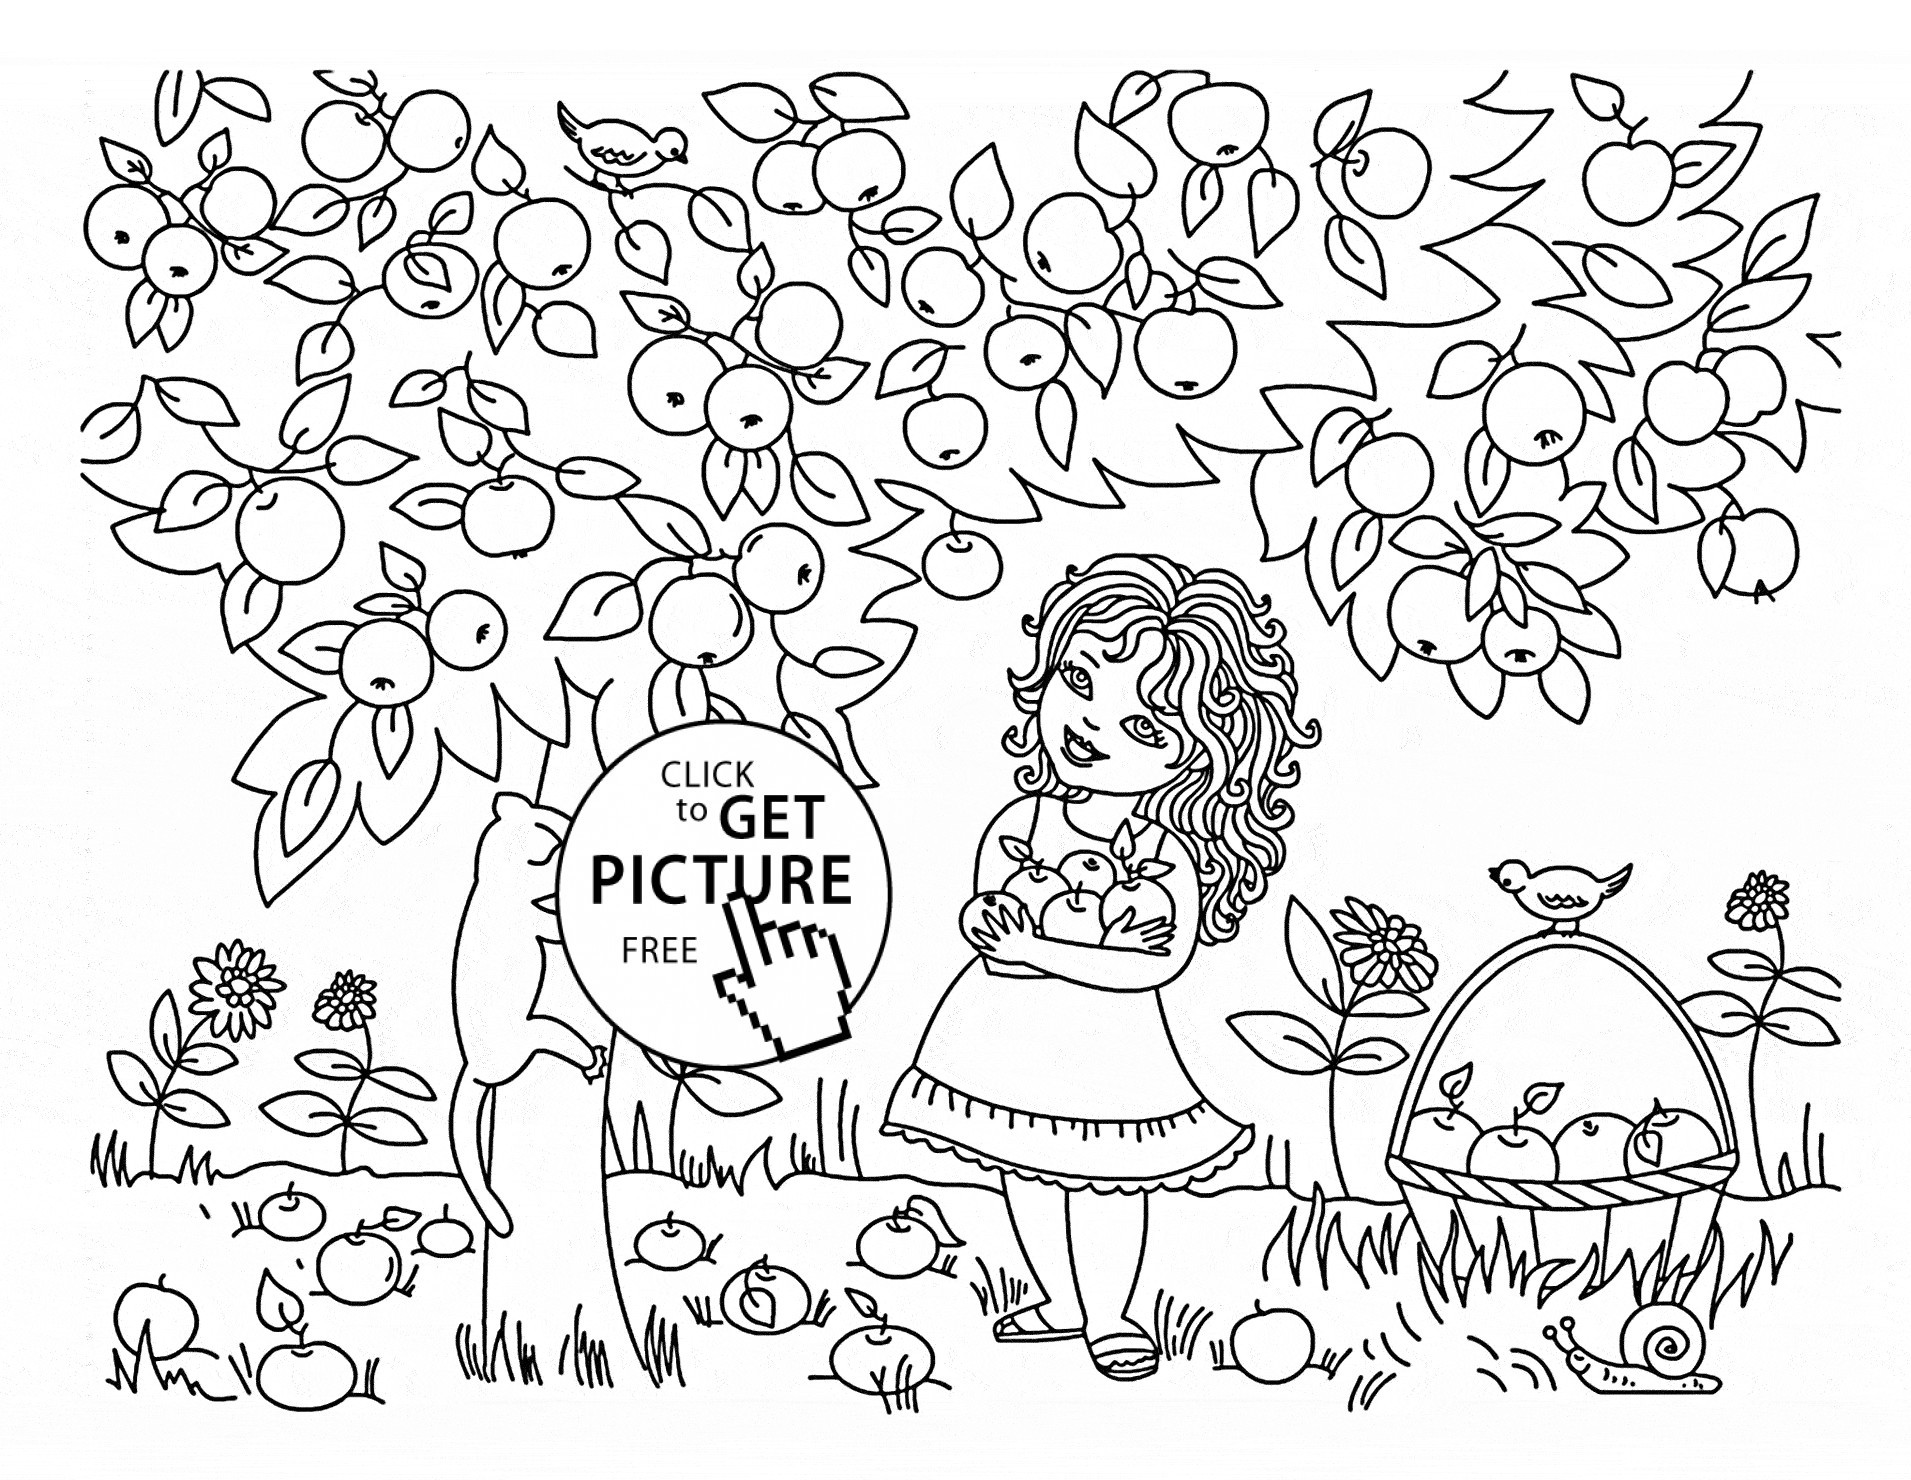 apple tree coloring page printable free printable apple coloring pages for kids page printable tree coloring apple